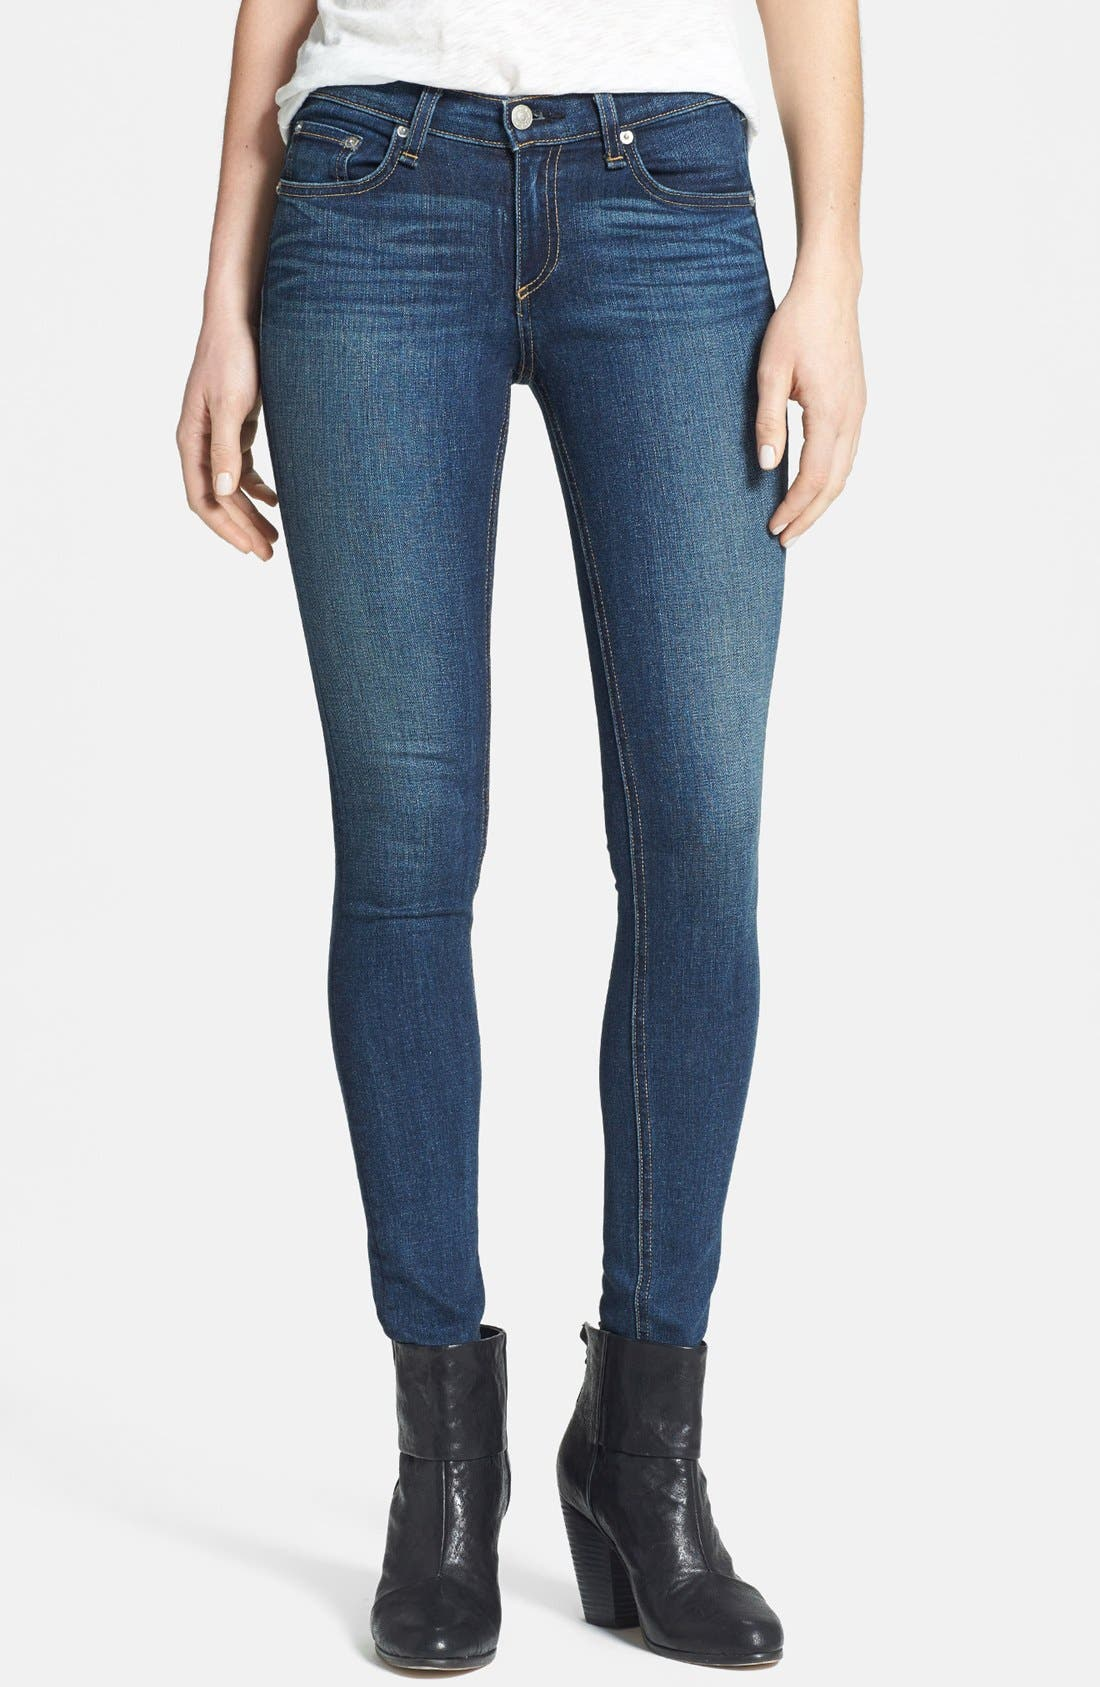 Alternate Image 1 Selected - rag & bone/JEAN Skinny Stretch Jeans (Preston)